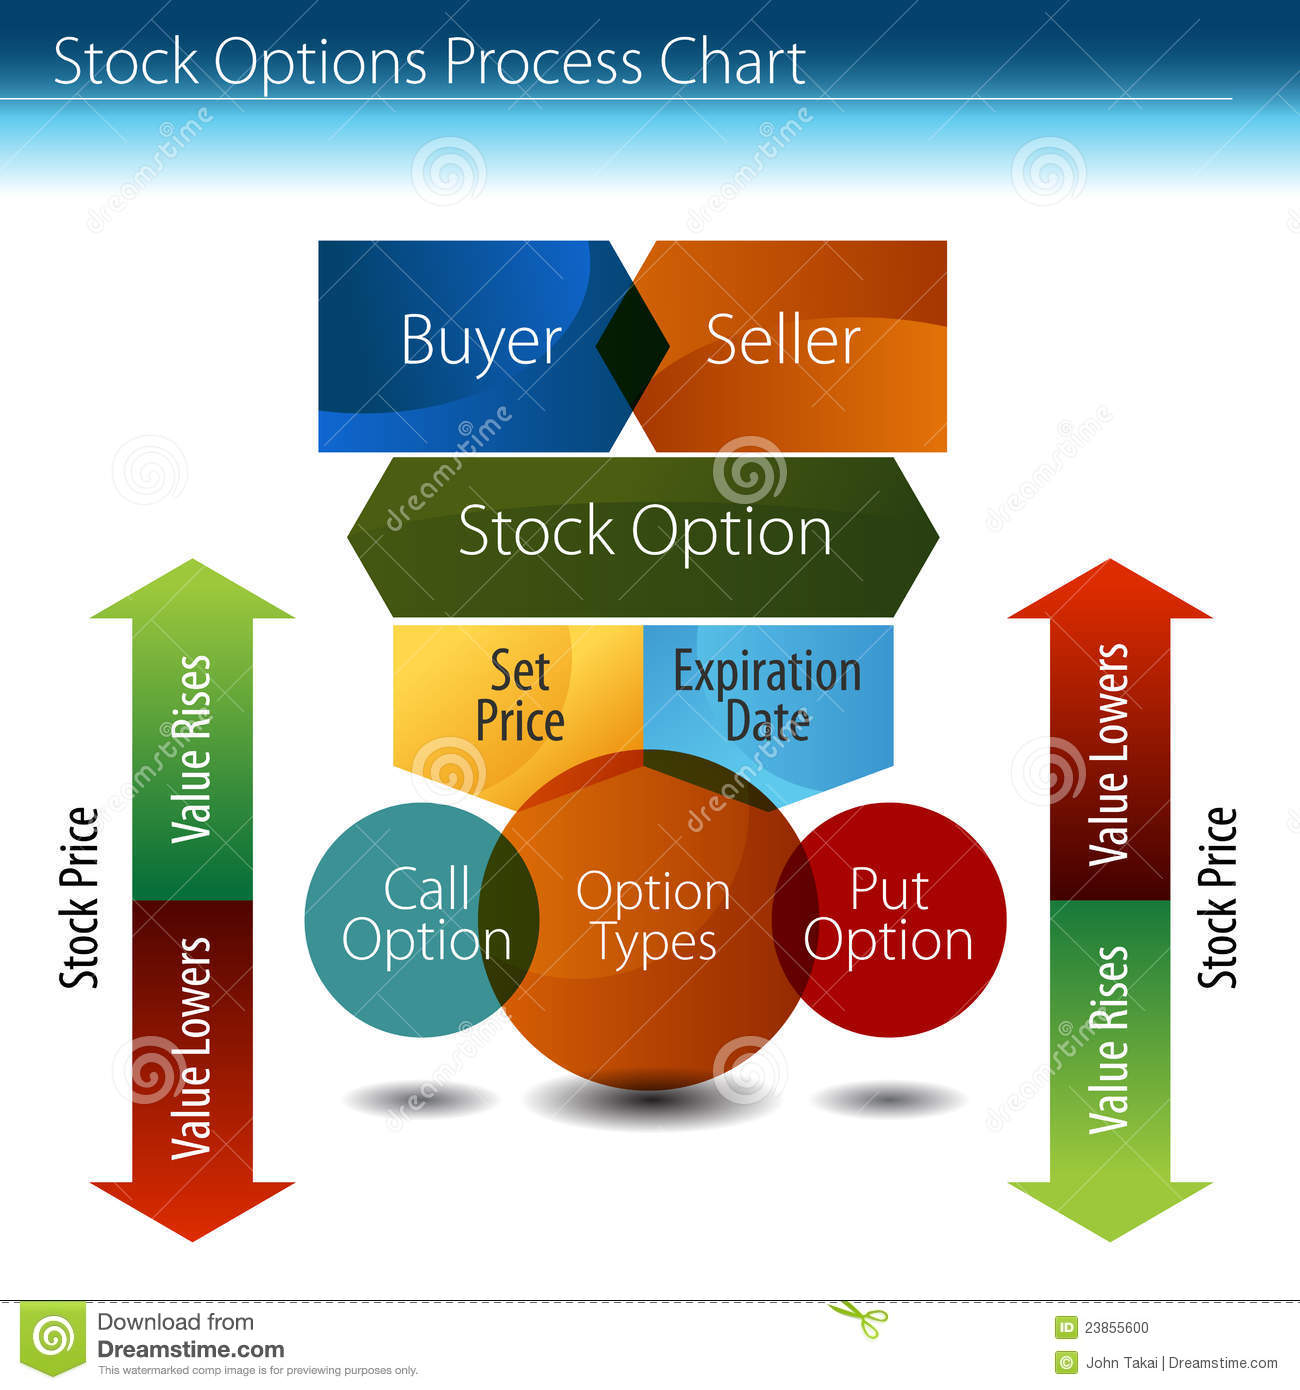 Stock options expiration cycle